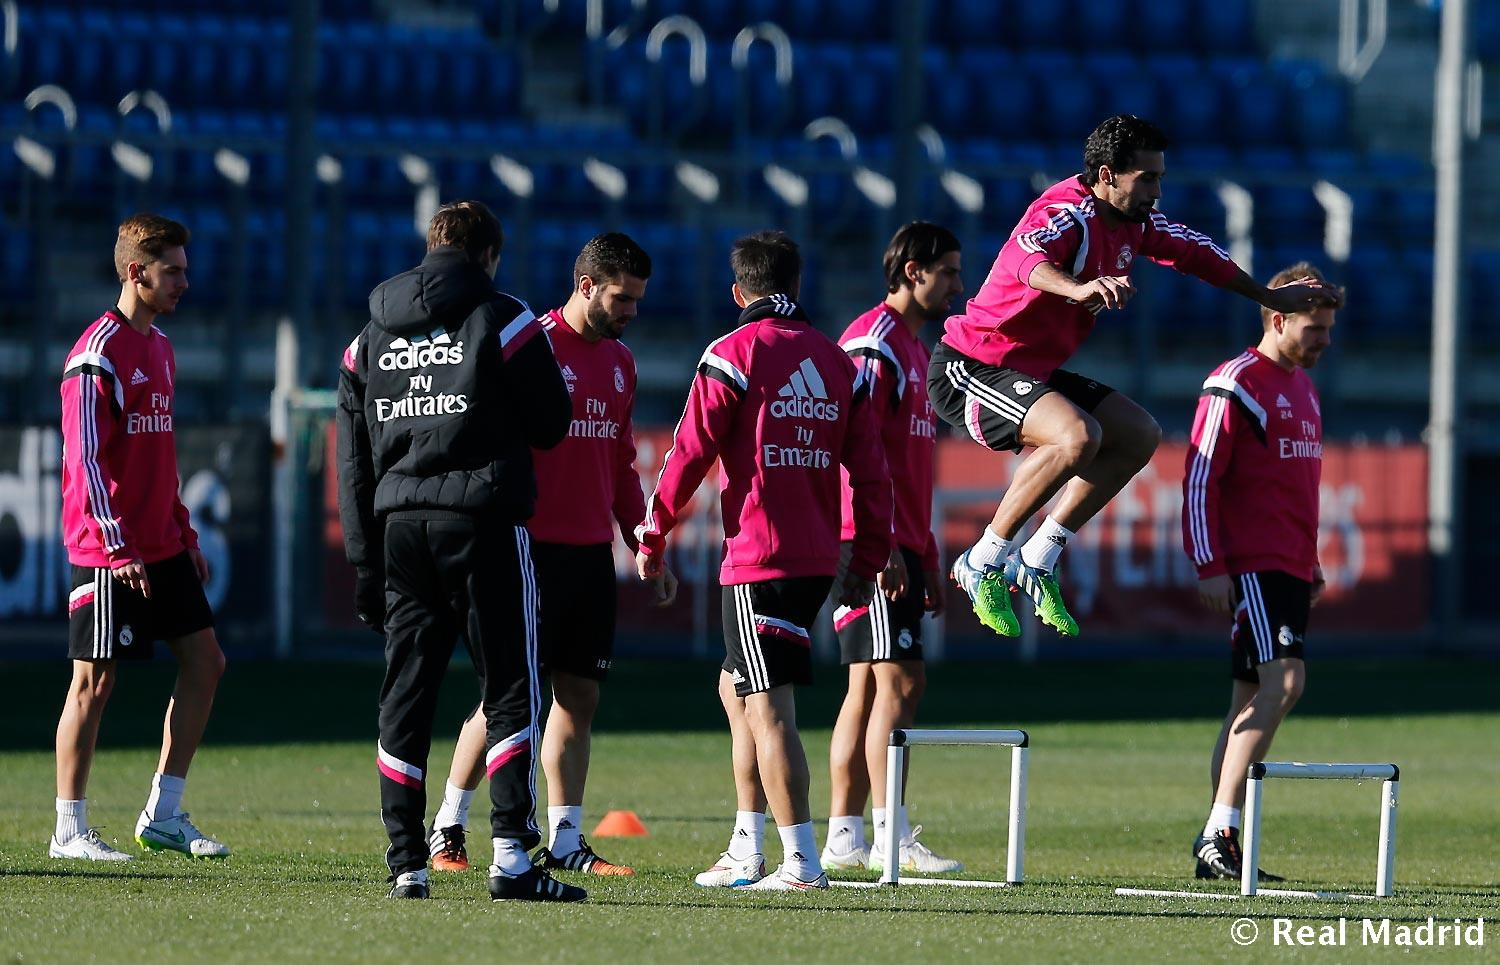 Real Madrid - Entrenamiento del Real Madrid - 05-01-2015